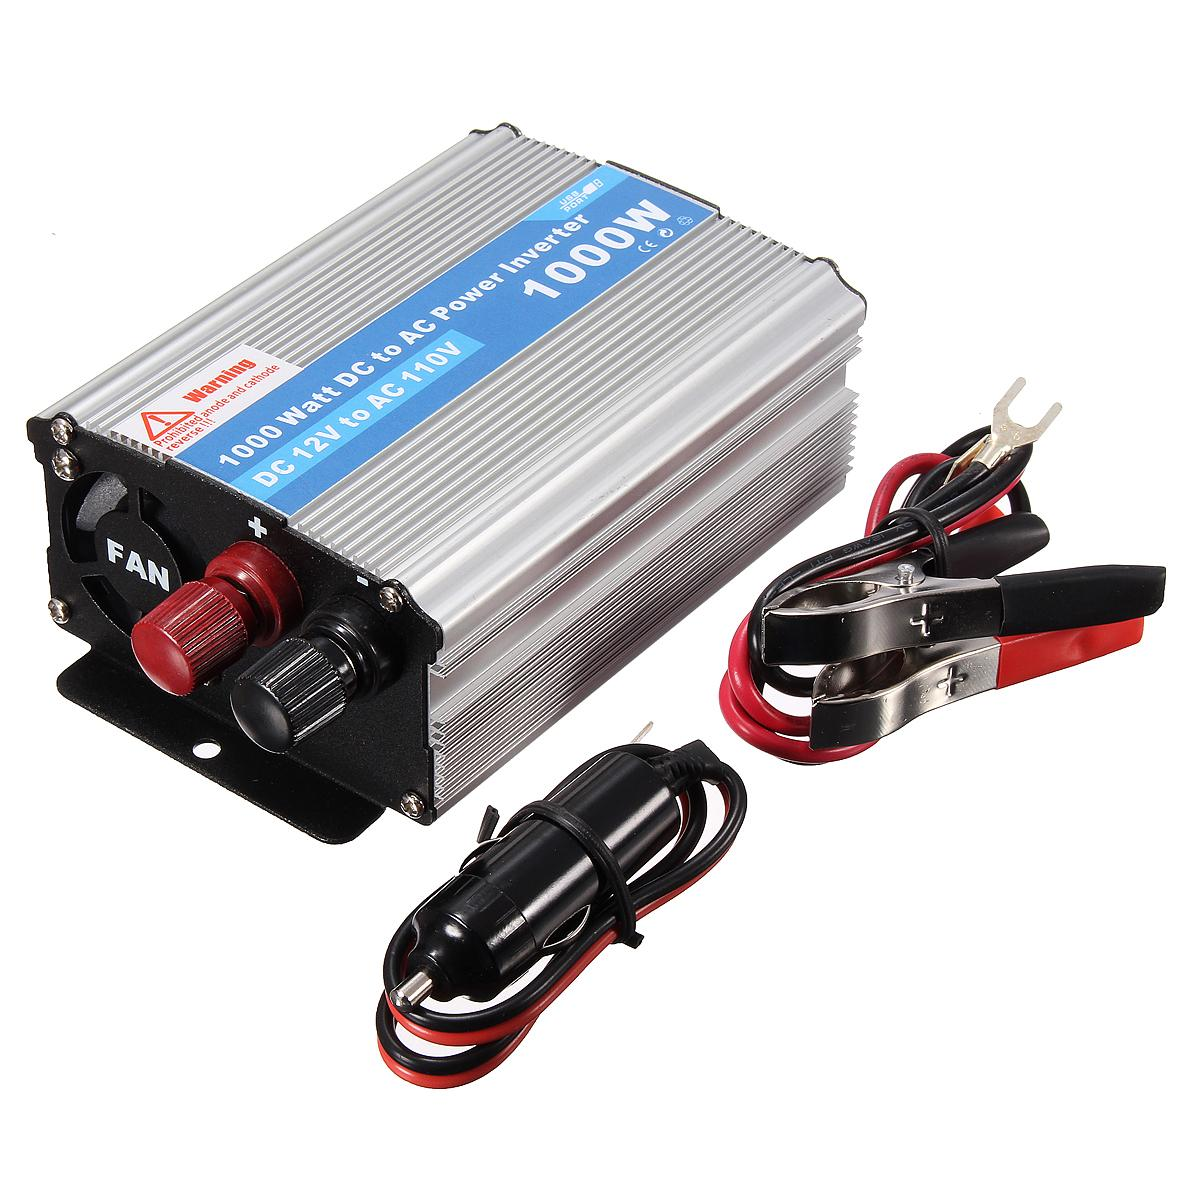 1000w dc 12v to ac 220v vehicle power supply switch on board charger car inverter cec_61k 1000w car inverter car inverter car power inverter online with